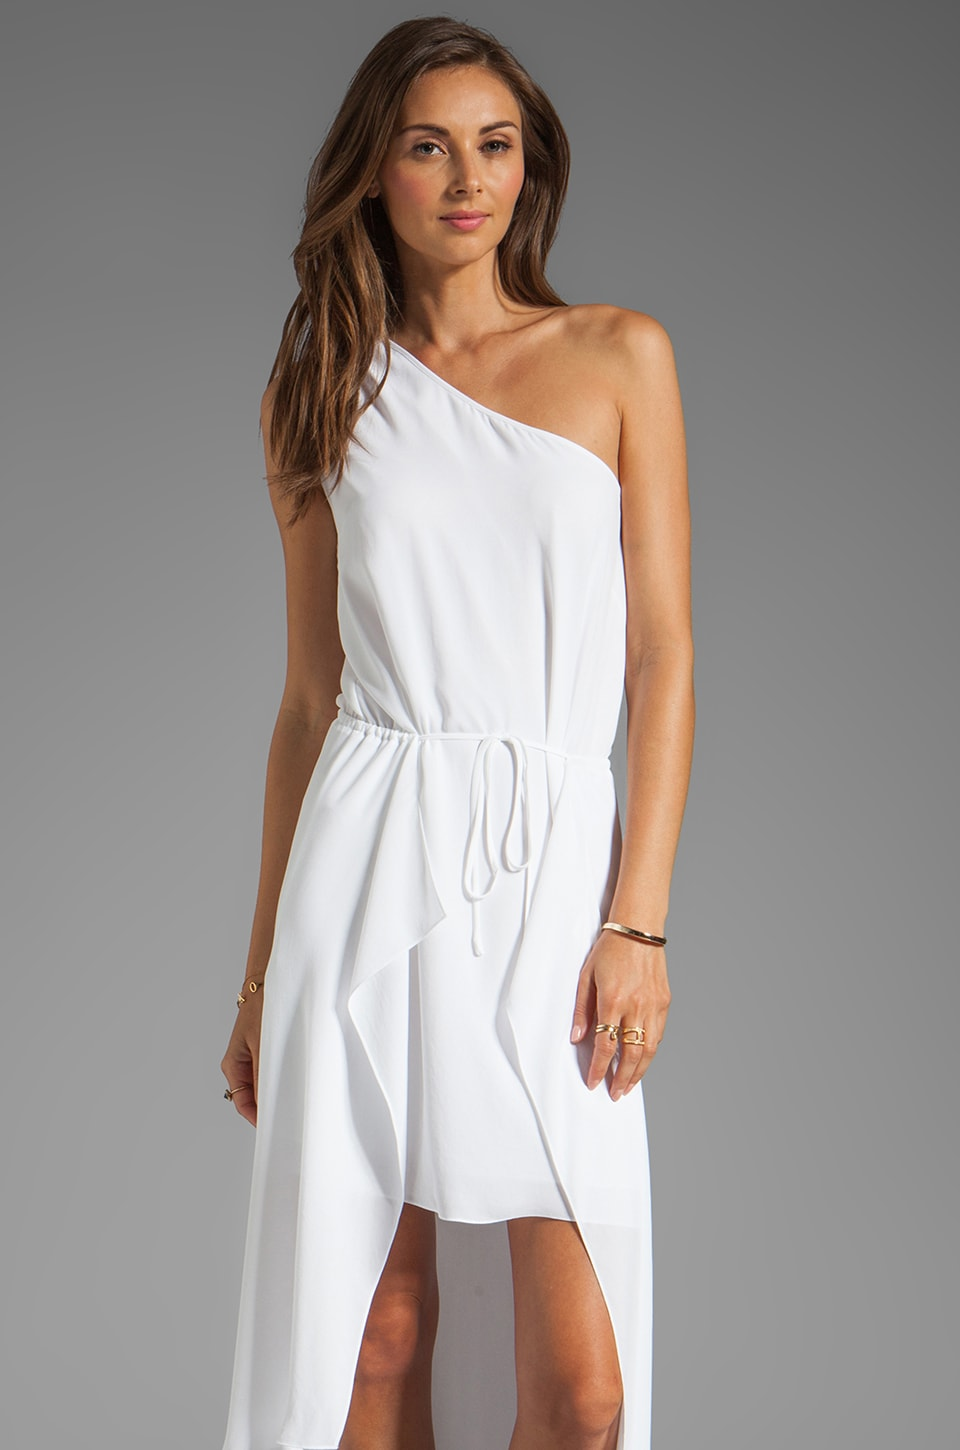 BCBGMAXAZRIA One Shoulder Hi-Low Dress in White